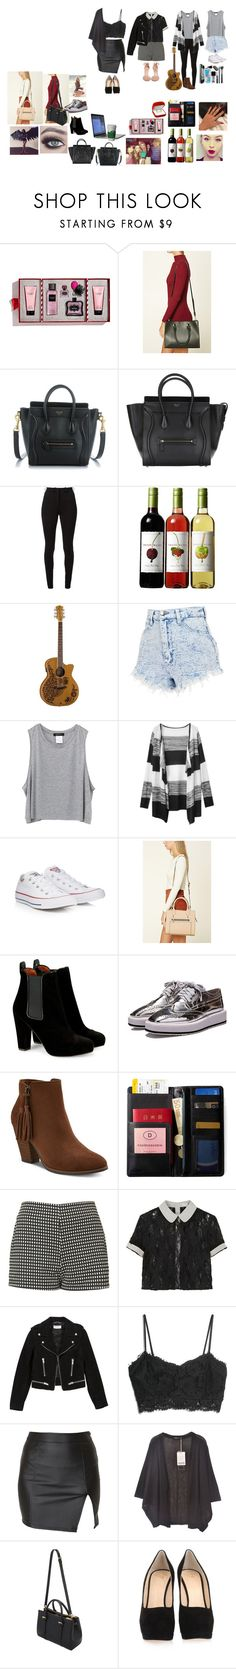 """""""meus looks"""" by mayara-loca ❤ liked on Polyvore featuring Victoria's Secret, Forever 21, Victoria Beckham, Lauren Conrad, Converse, GUESS, IDEA International, Forum, Motel and Opening Ceremony"""